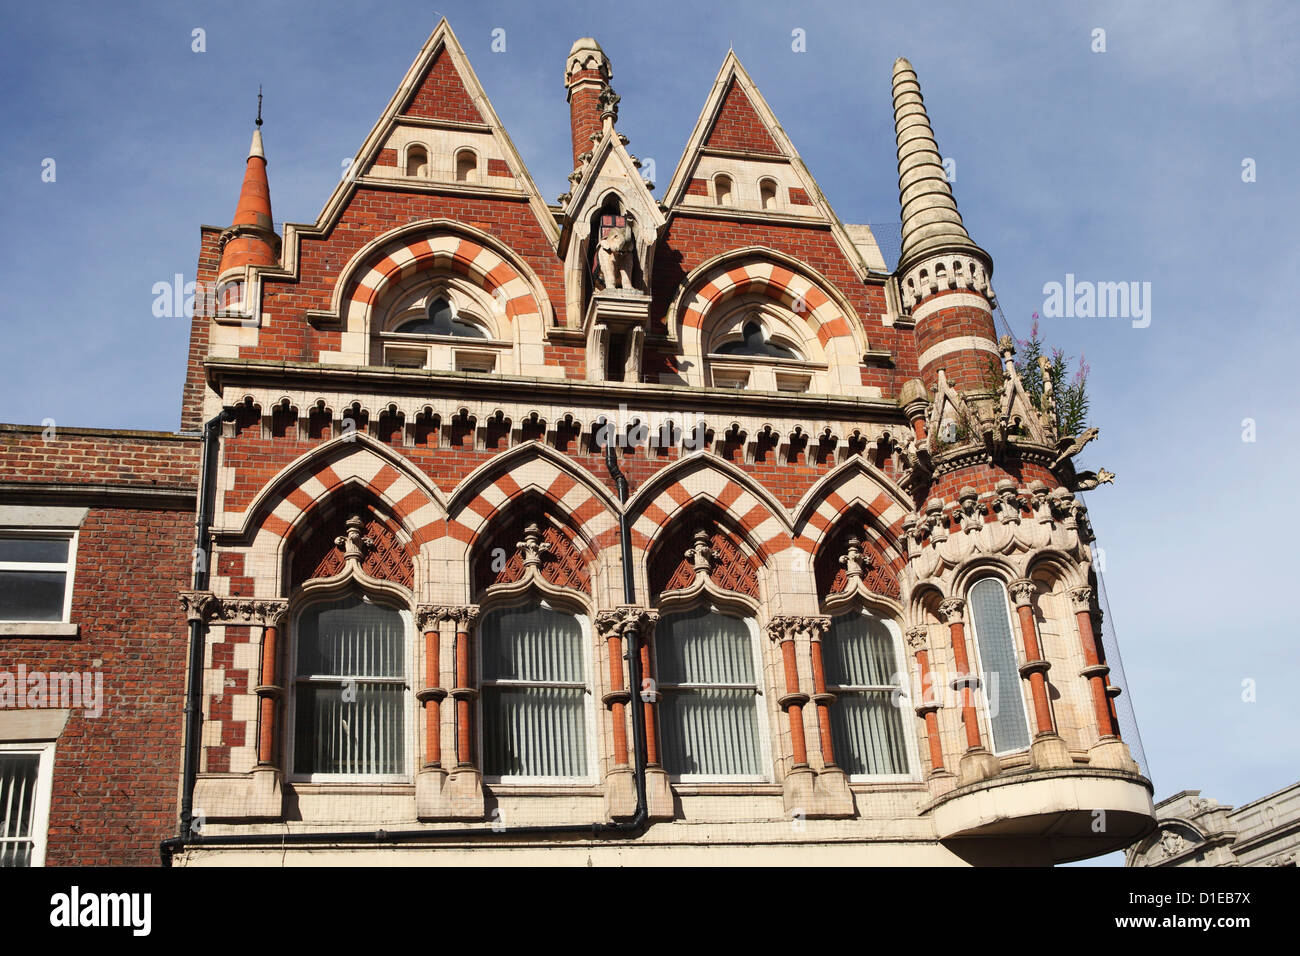 The Victorian Hindu-Gothic Grade II Listed facade of the Elephant Tea Rooms in Sunderland, Tyne and Wear, England - Stock Image